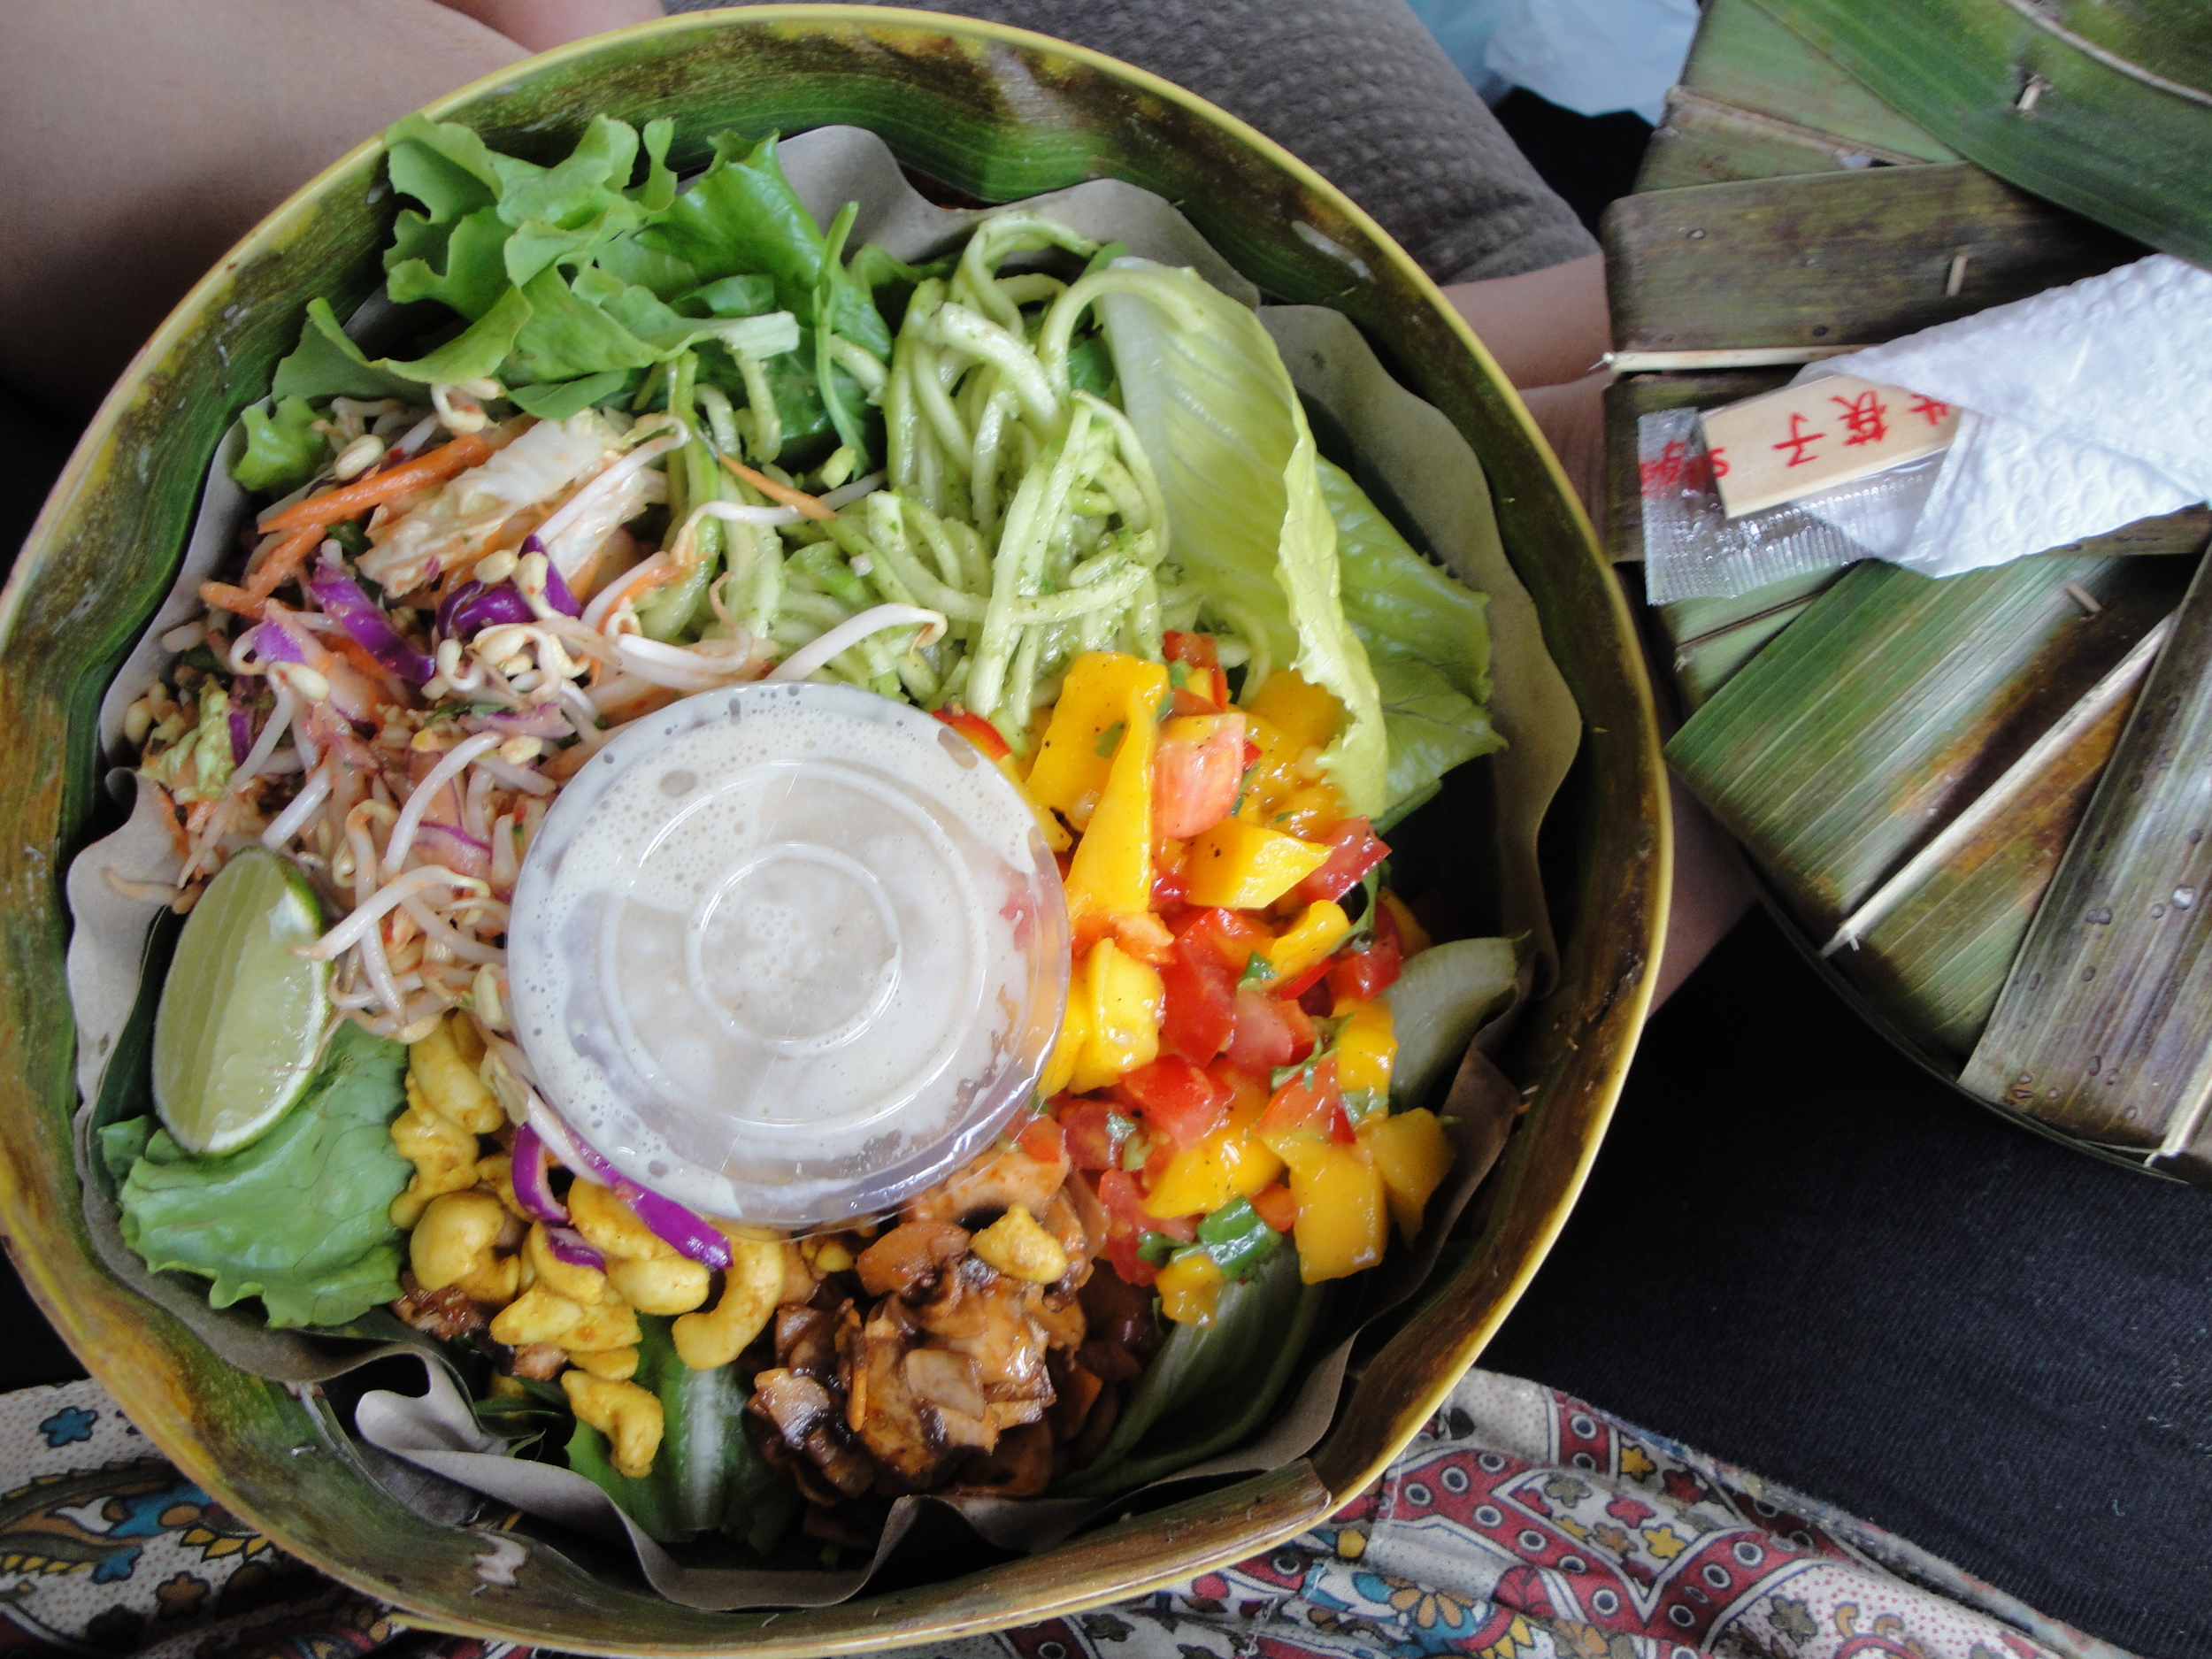 Raw vegan salad for take away in this awesome banana leaf container!